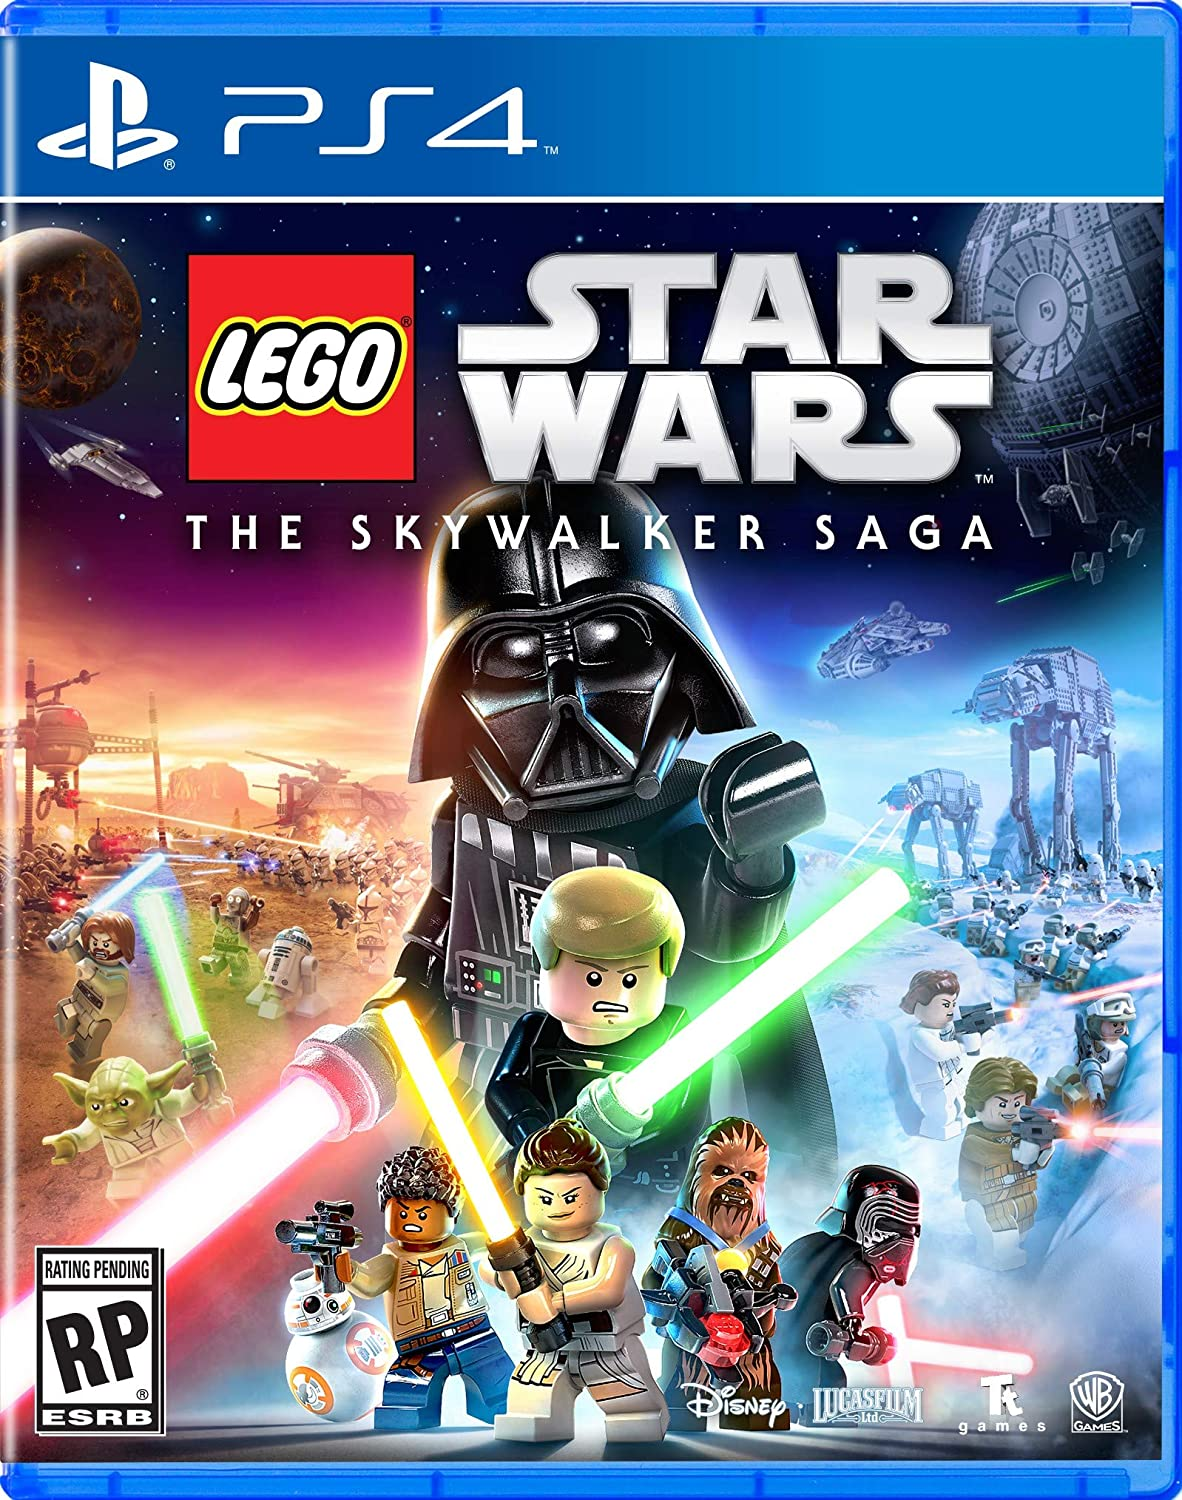 Lego Star Wars Skywalker Saga for PlayStation 4 [USA]: Amazon.es: Whv Games: Cine y Series TV